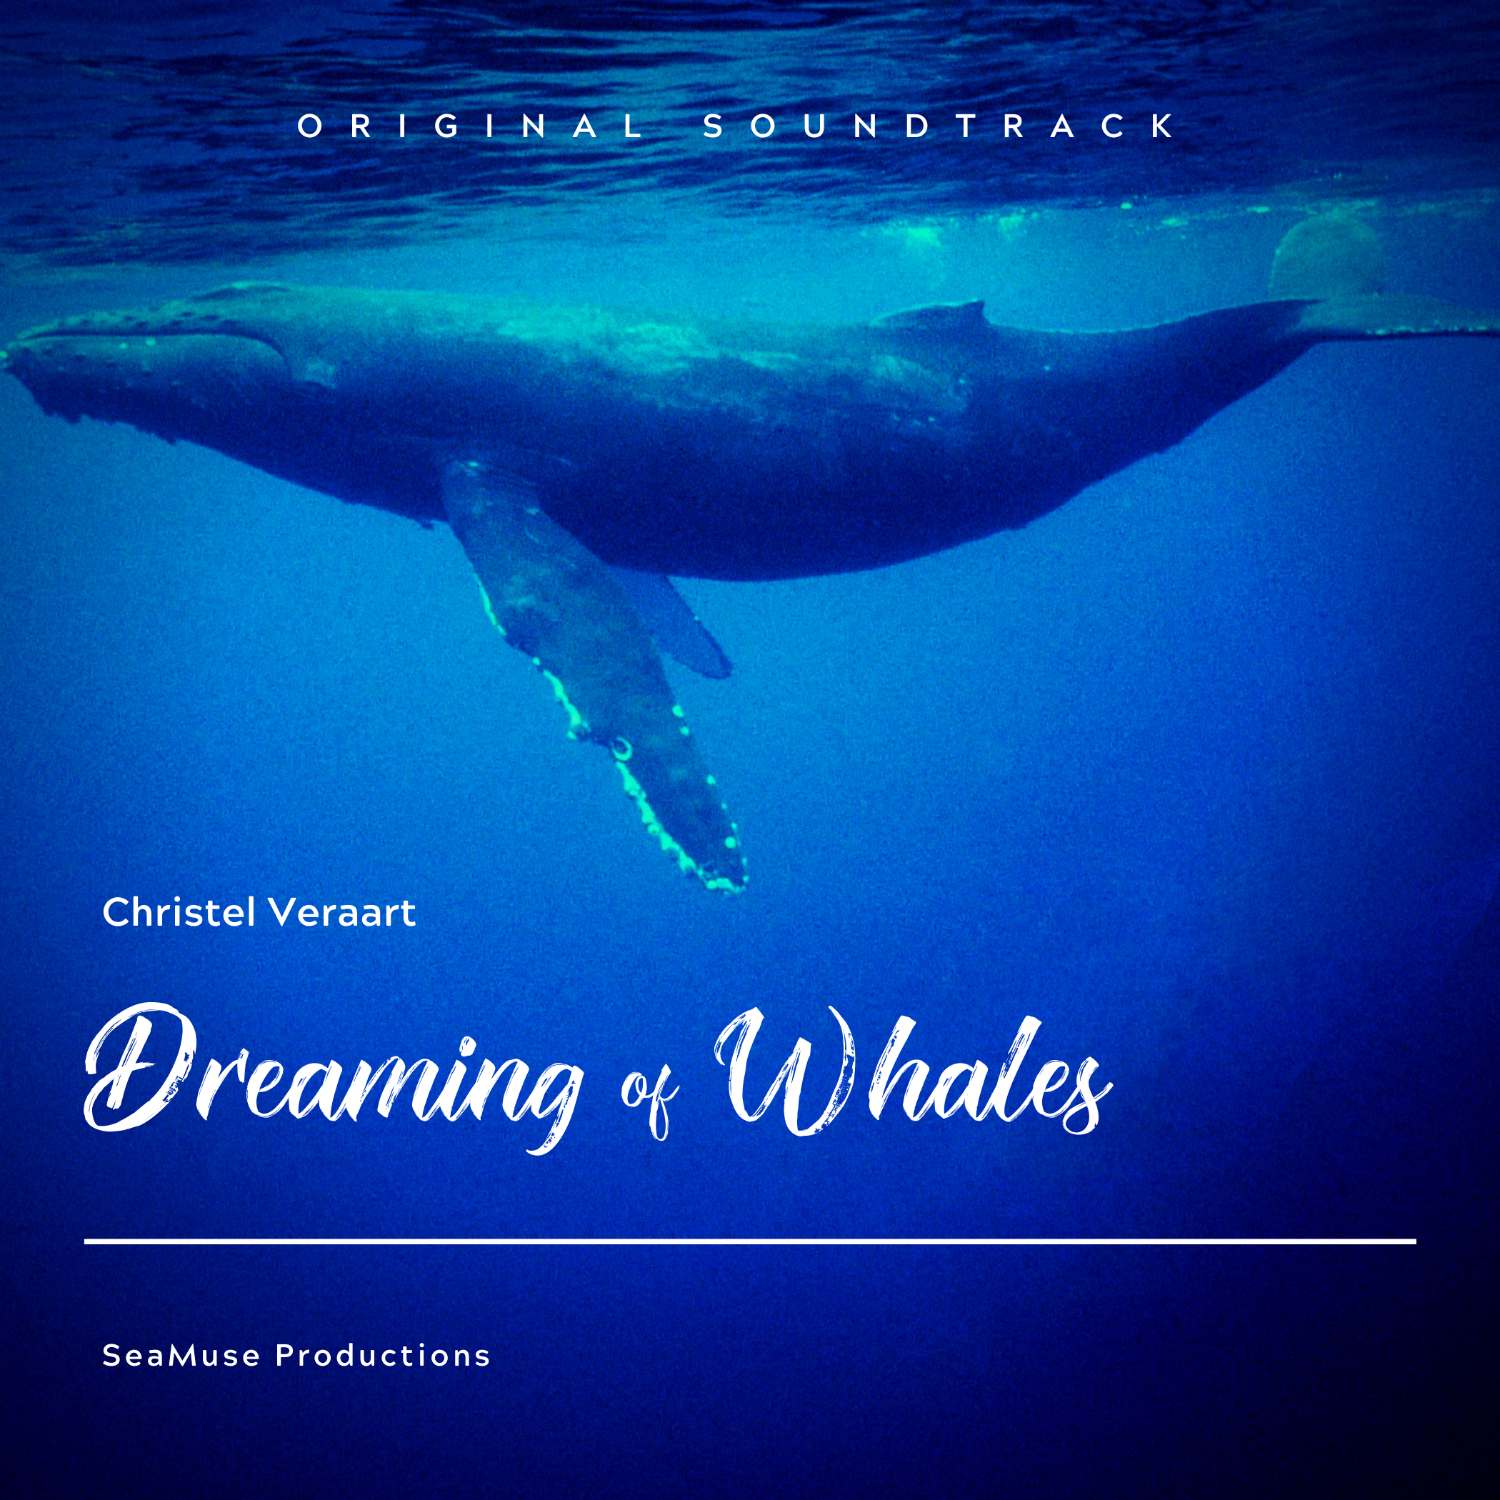 Dreaming of Whales - Soundtrack - Album Art by Christel Veraart